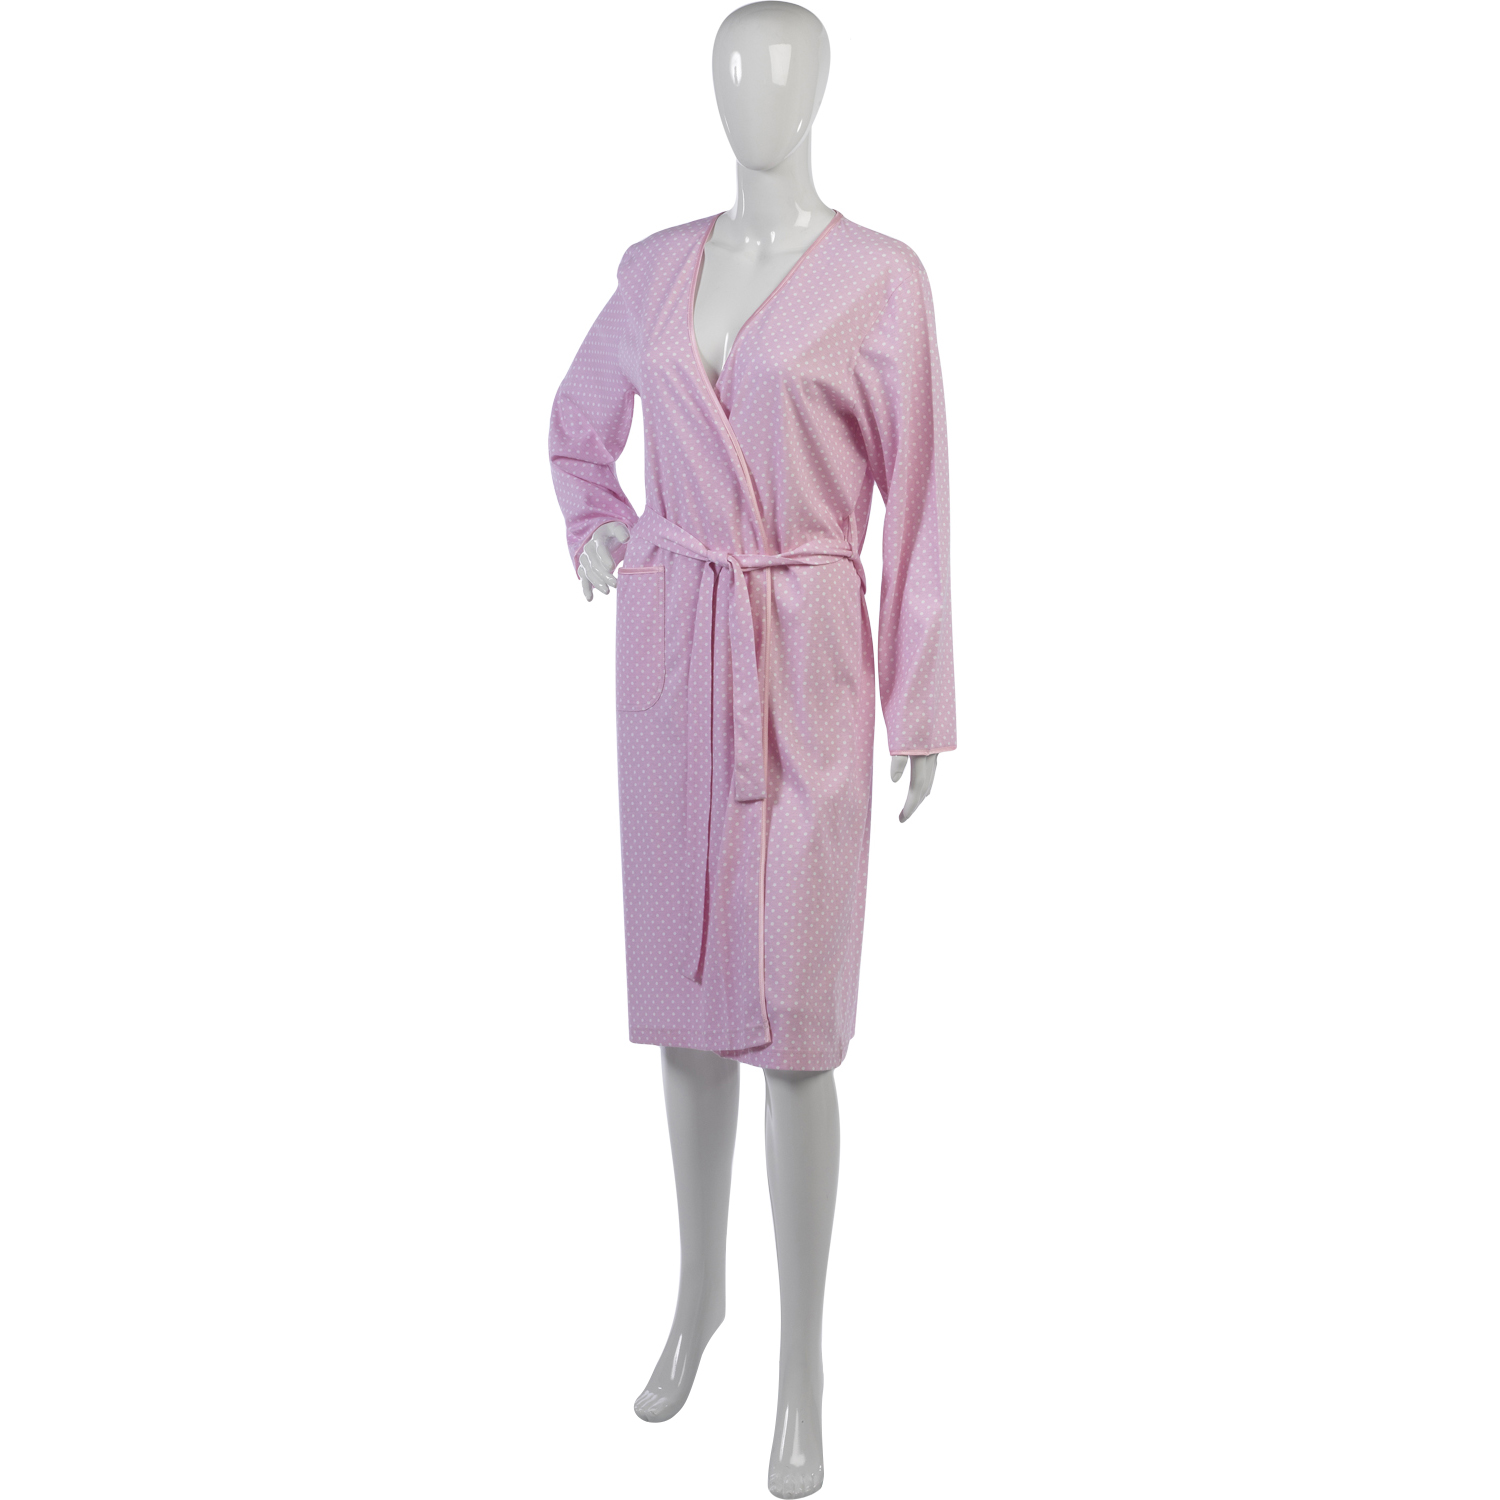 Dark pink floral print satin 'Pure Peony' dressing gown Save. Was £ Now £ B by Ted Baker Navy floral print 'Kensington' satin dressing gown Save. Was £ Now £ Lounge & Sleep Grey butterfly print fleecelong sleevedressing gown Save. Was £